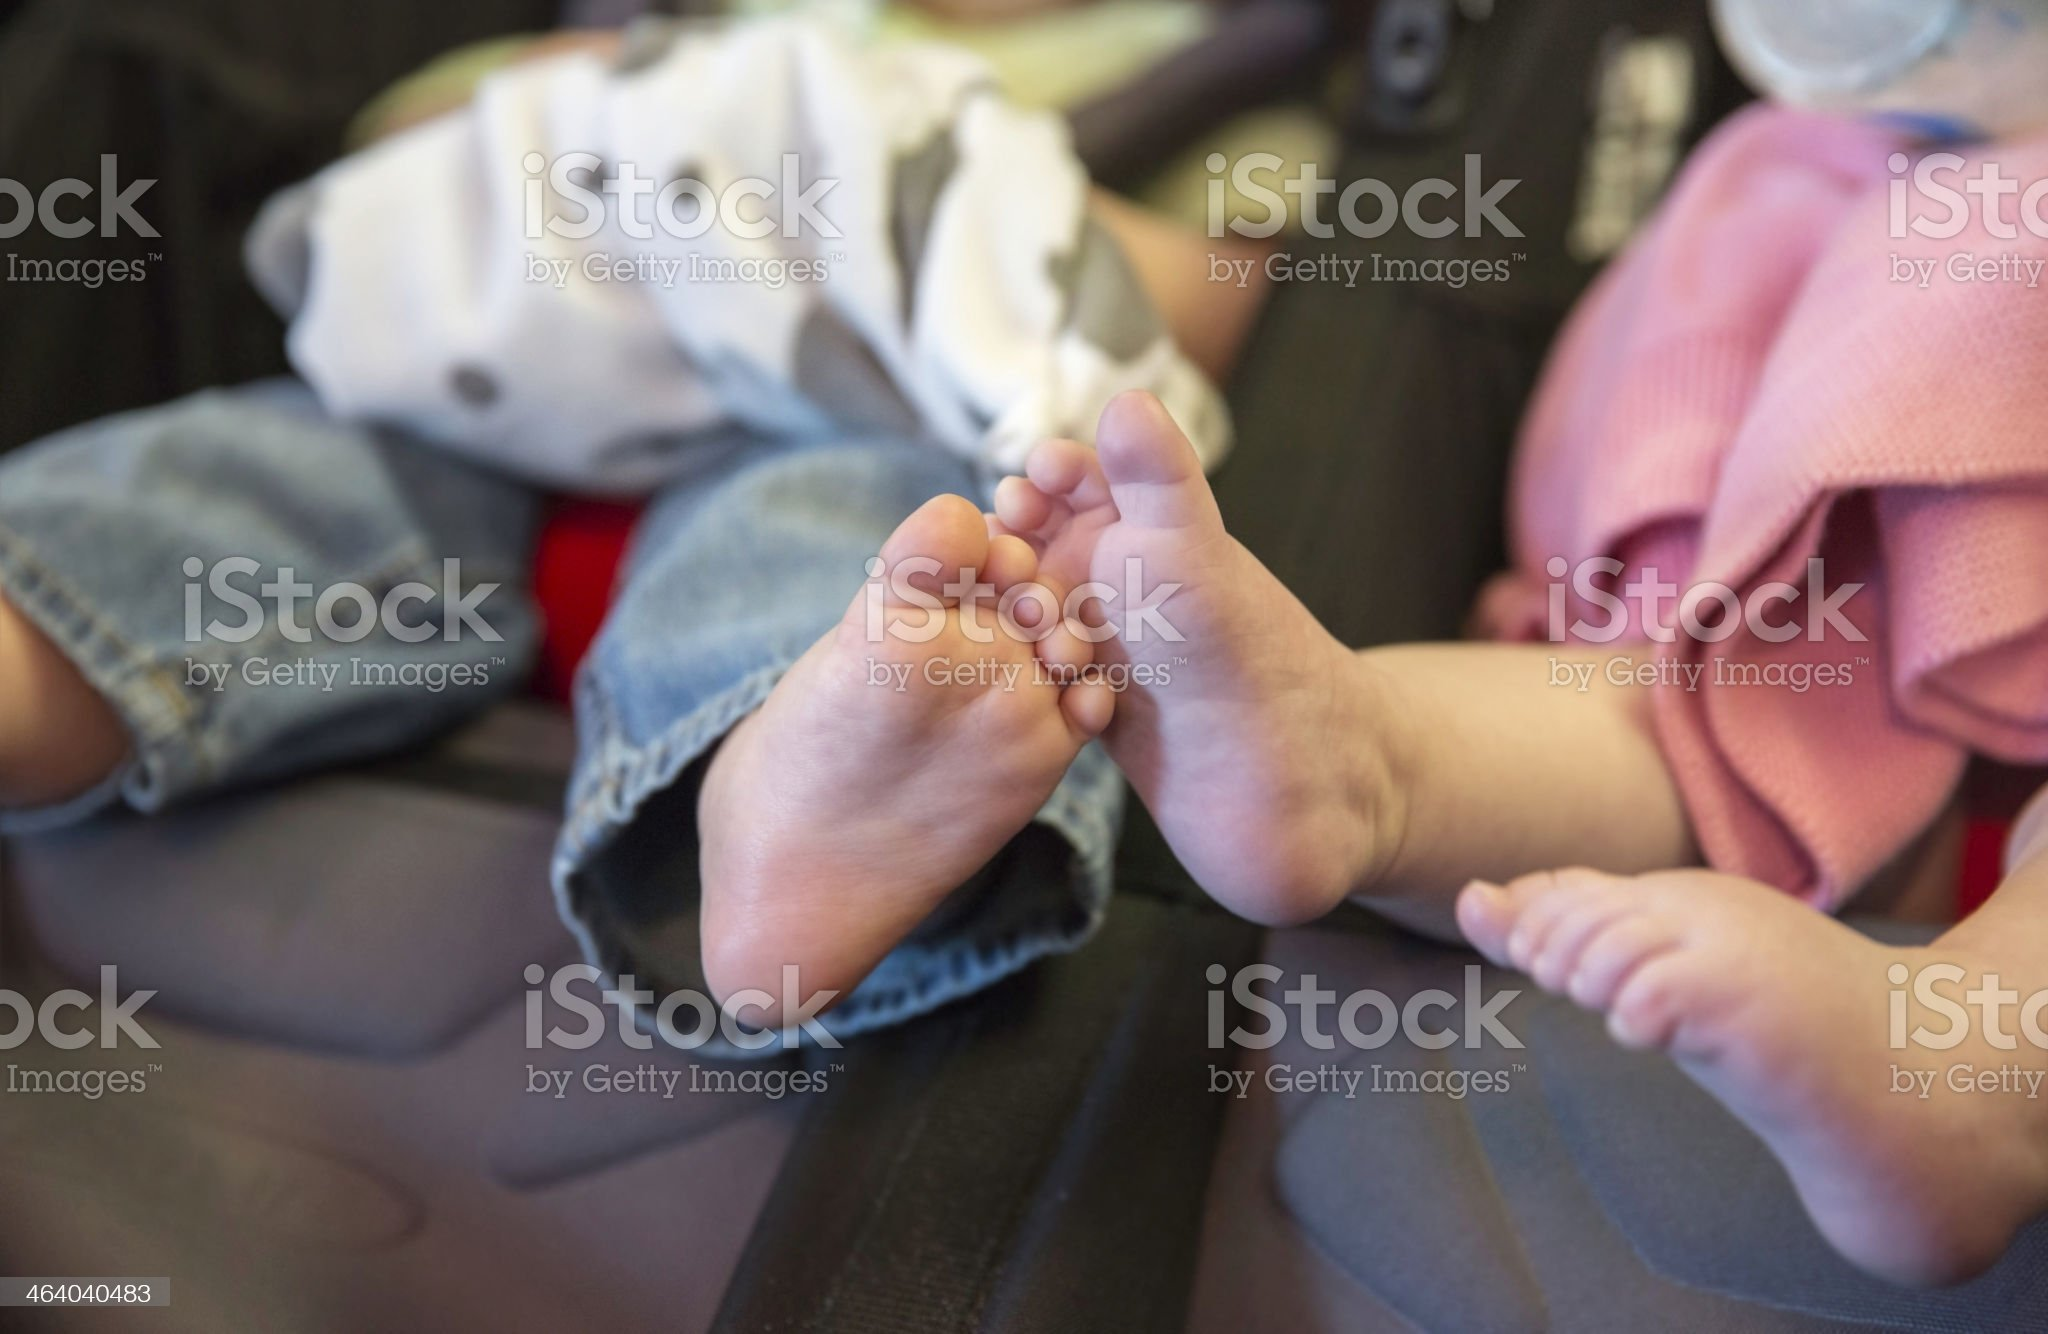 His 'N' Her feet royalty-free stock photo